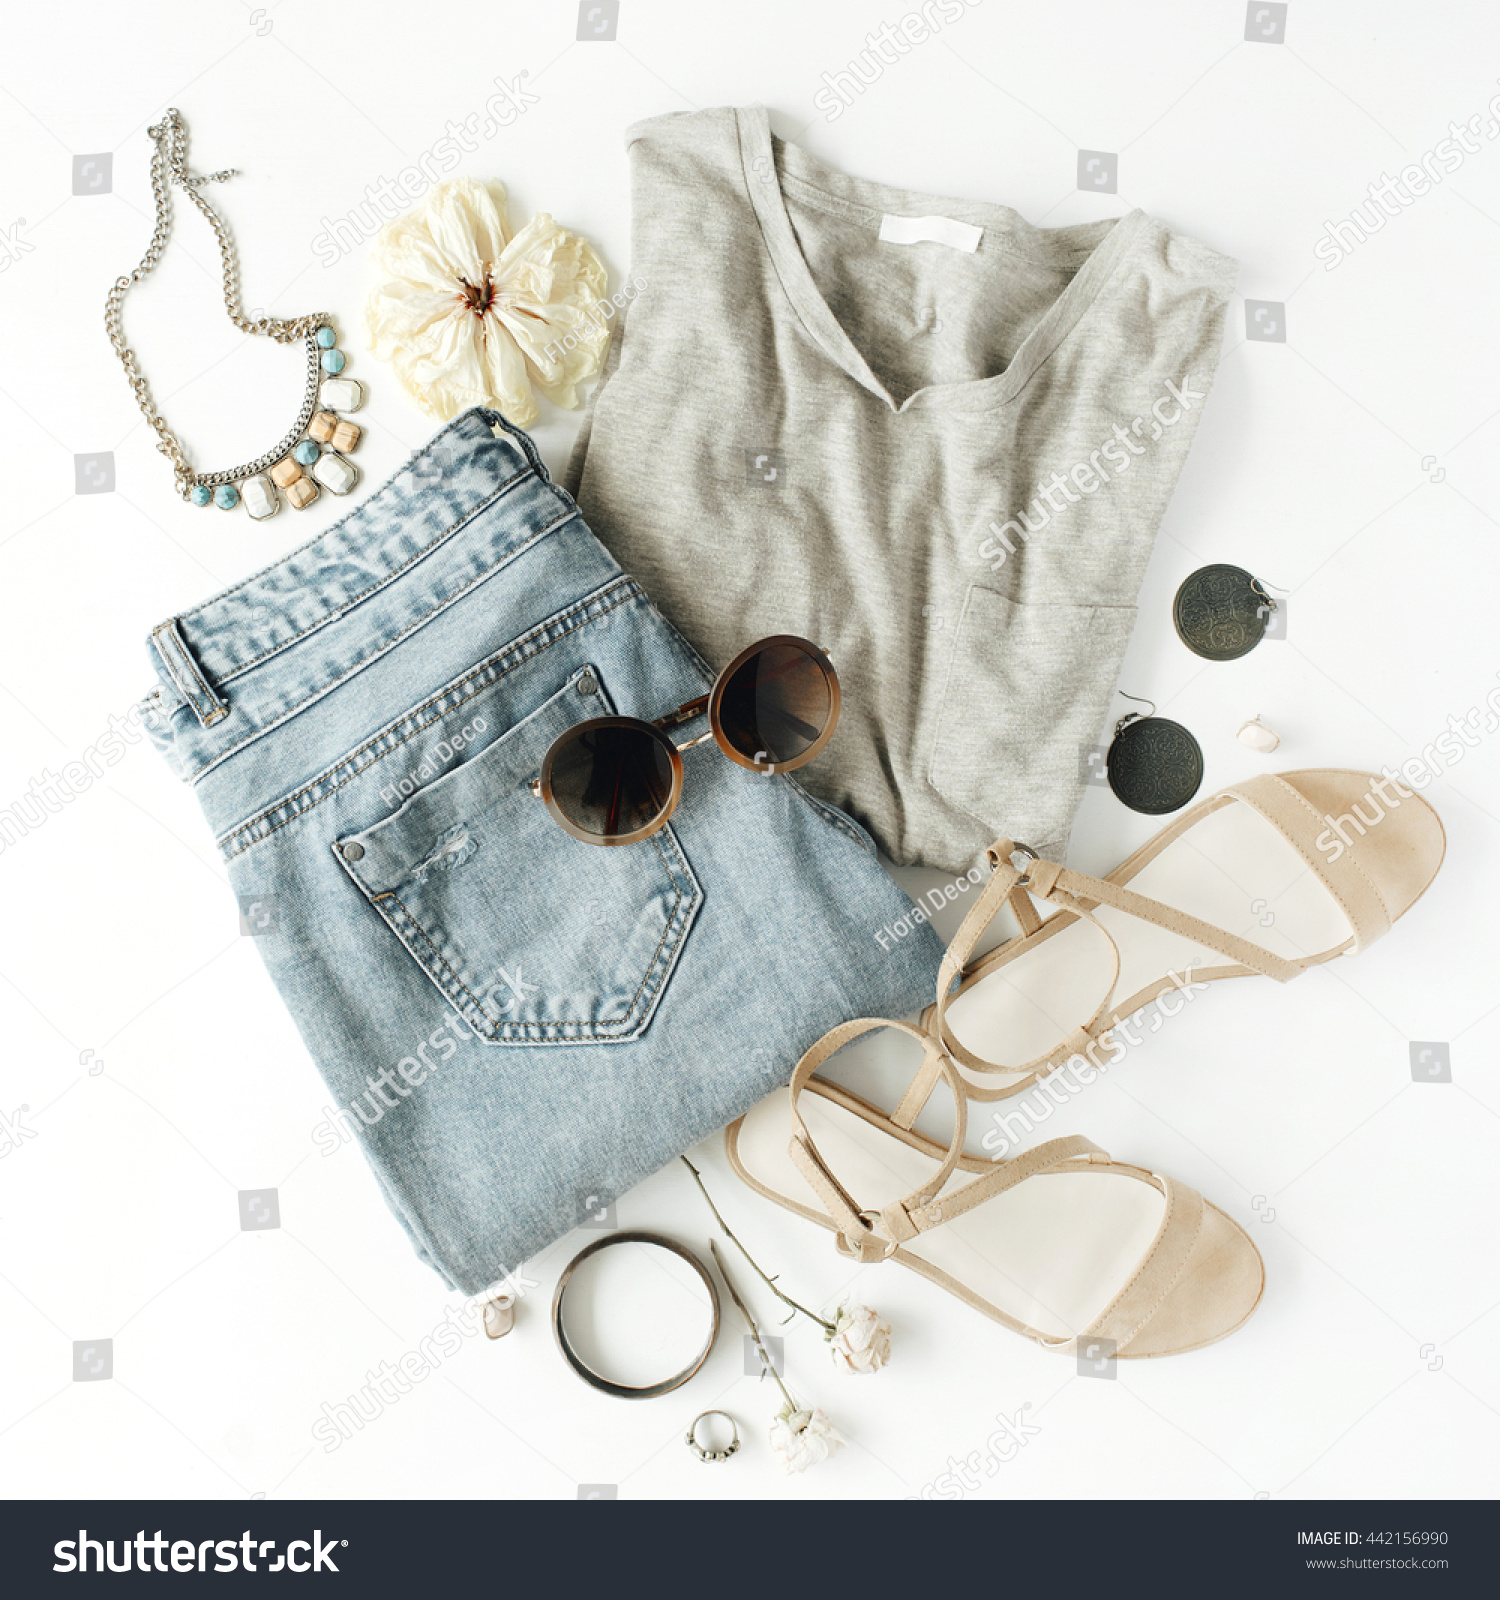 950a303dce6f flat lay feminine clothes and accessories collage with shirt, jeans shorts,  sunglasses, bracelet, sandals, earrings on white background.